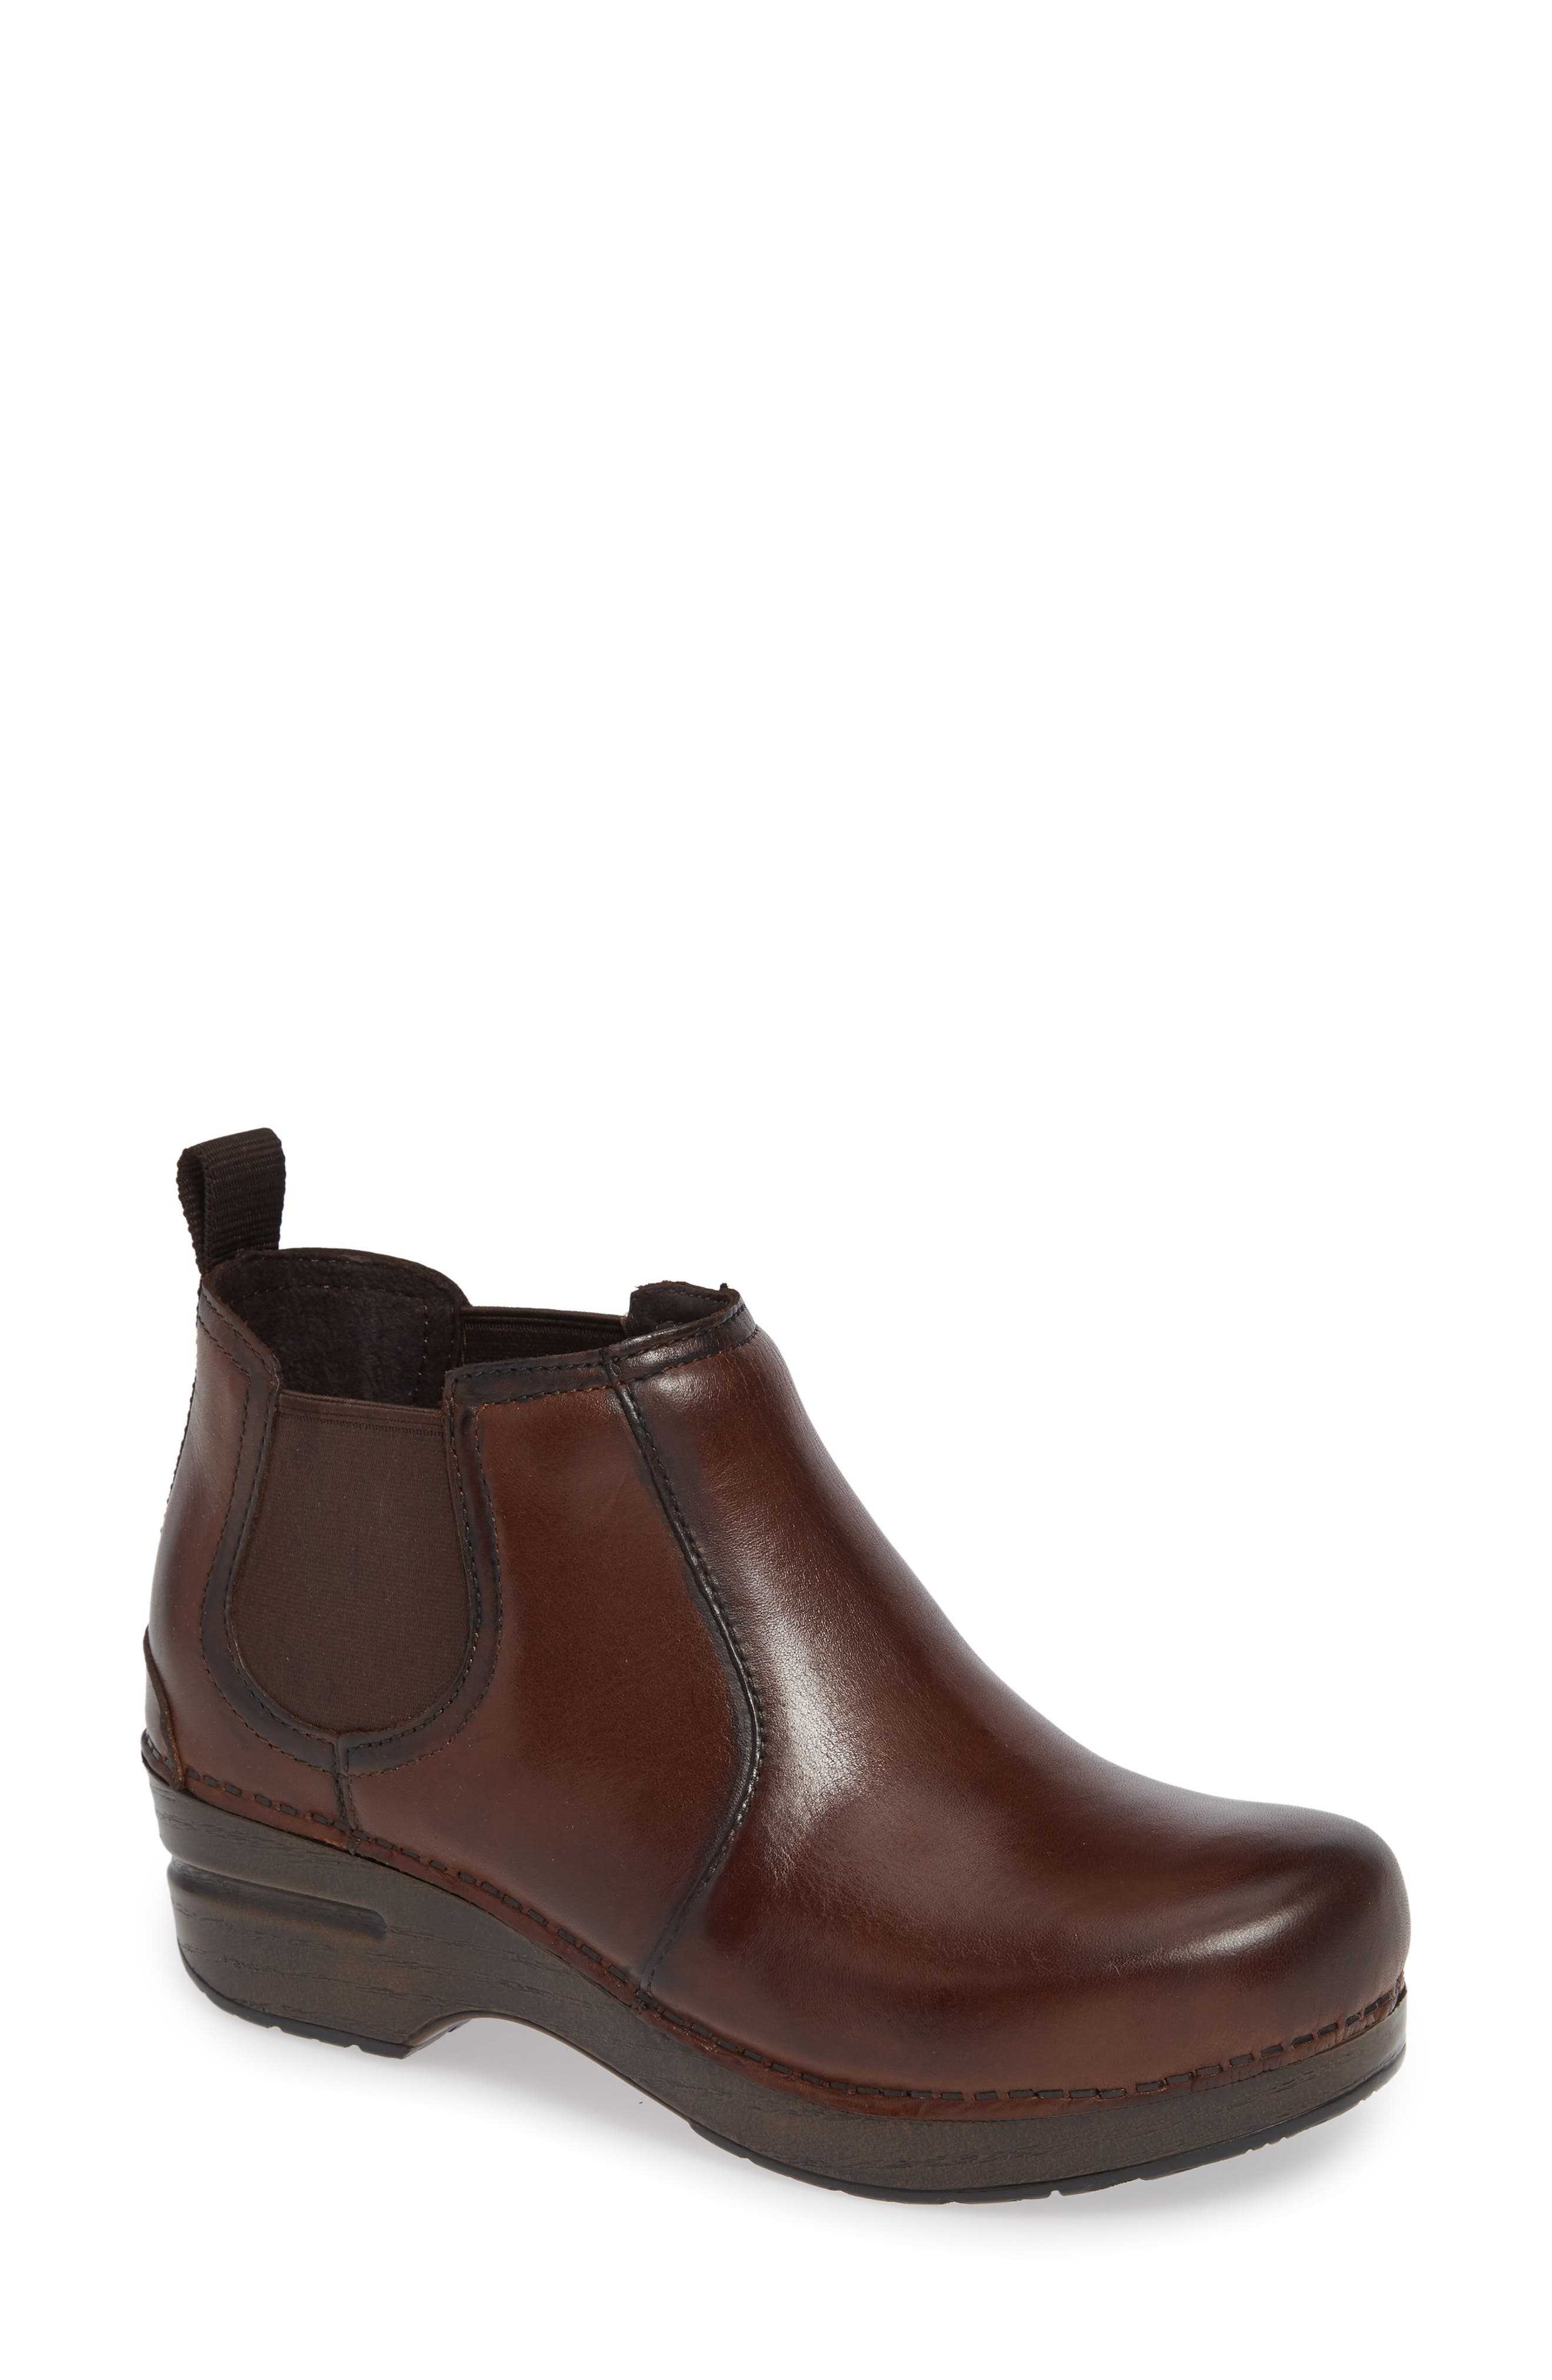 Frankie Bootie,                         Main,                         color, BROWN LEATHER